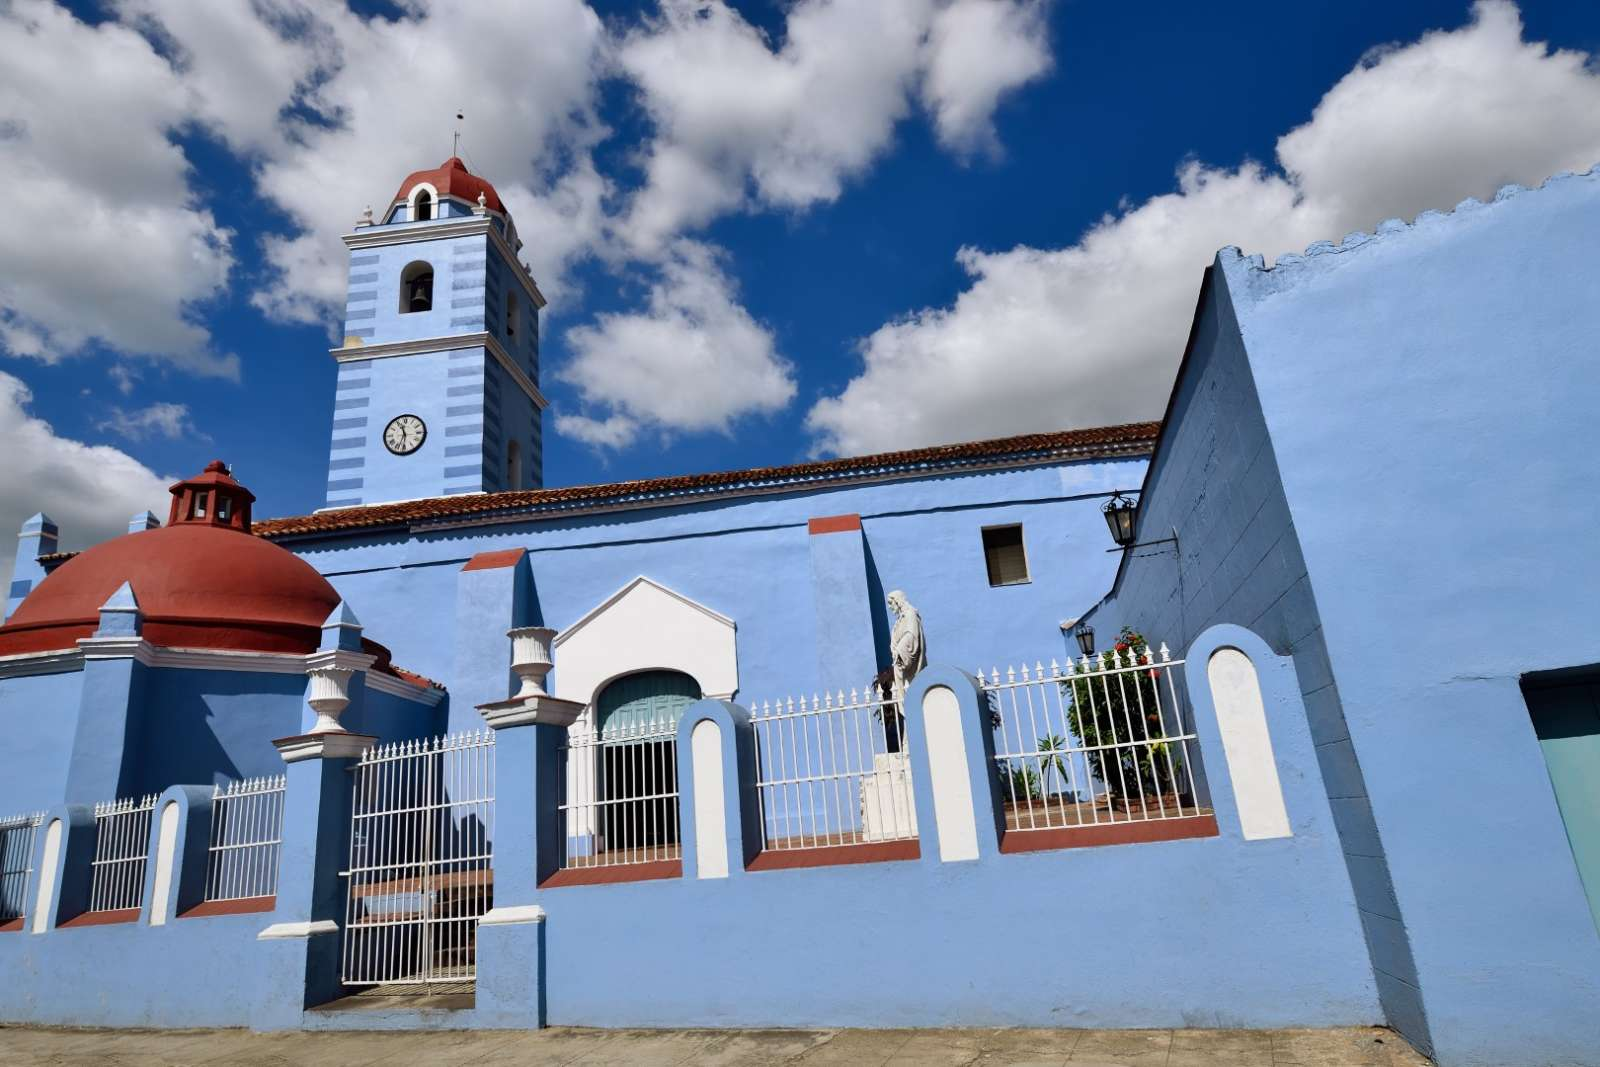 Attractive, old blue church in Sancti Spiritus, Cuba